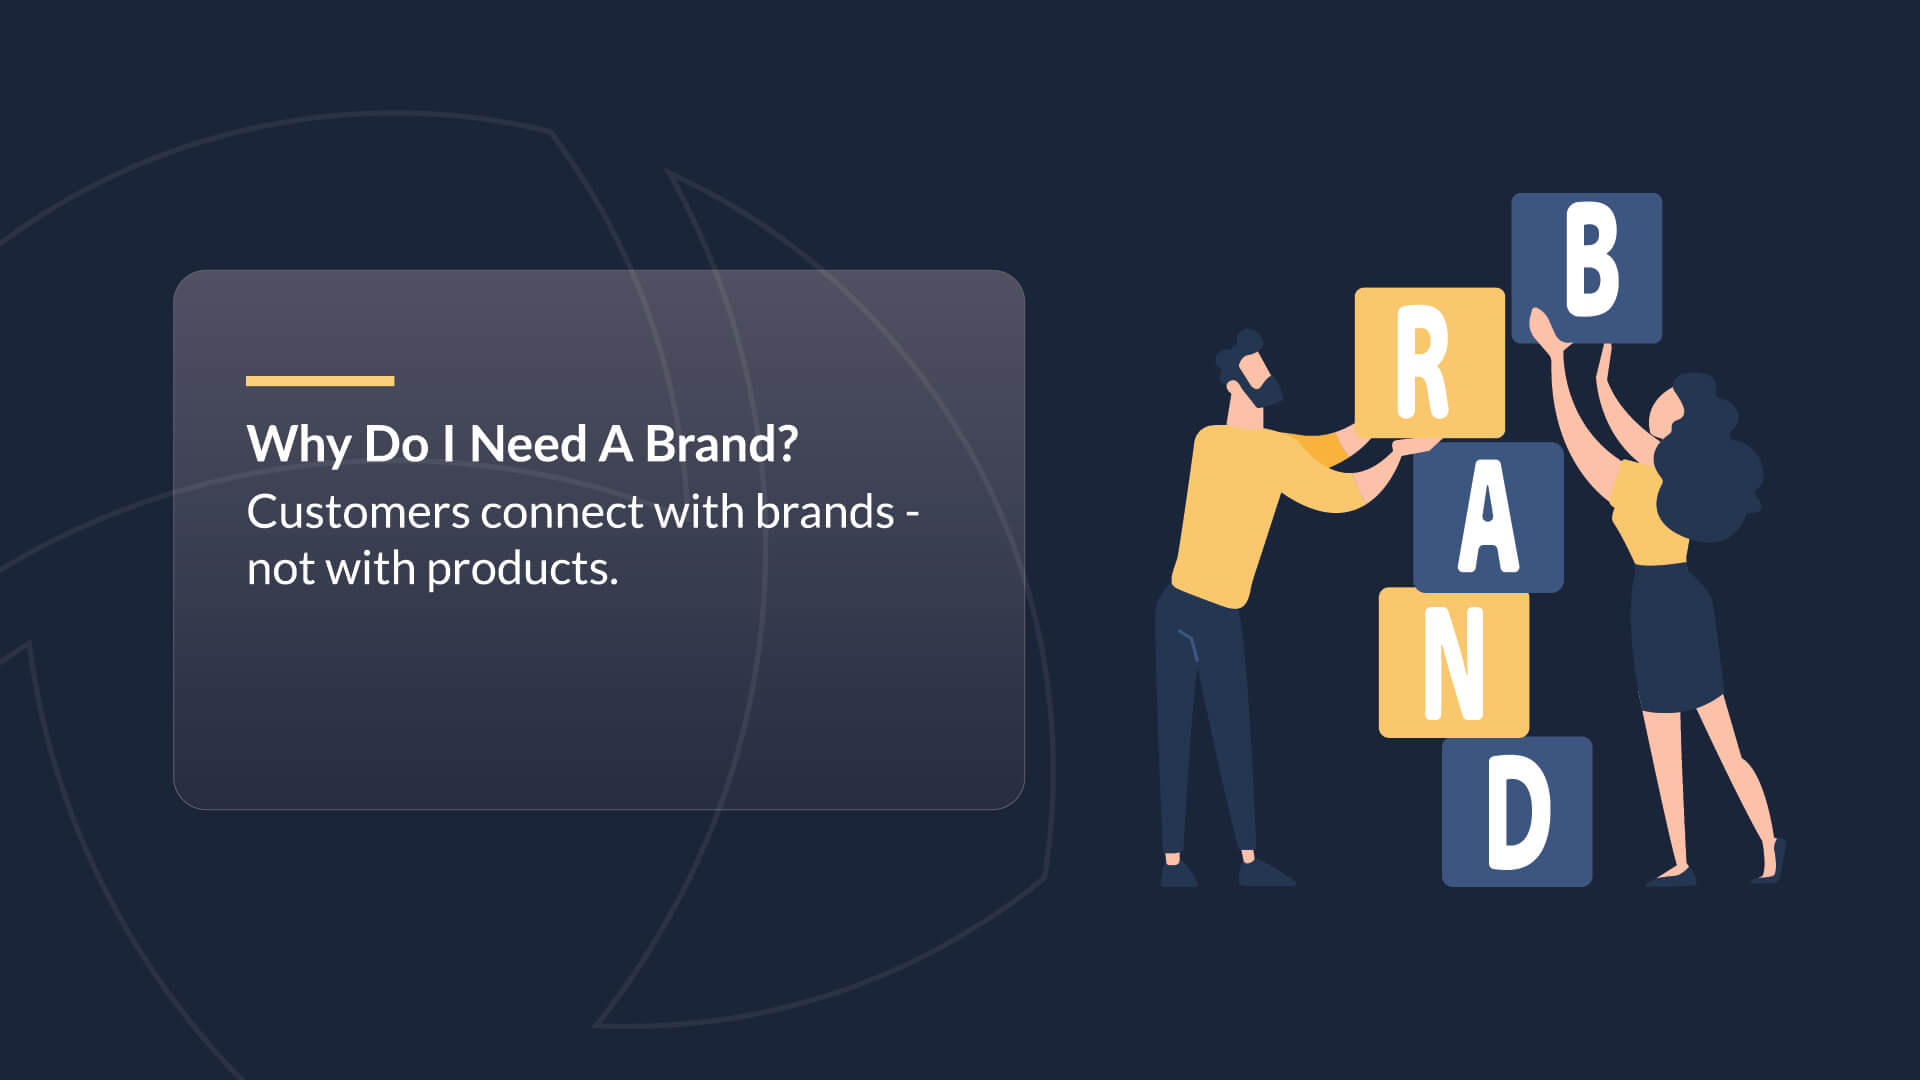 Why do I need a brand? Customers connect with brands - not with products.